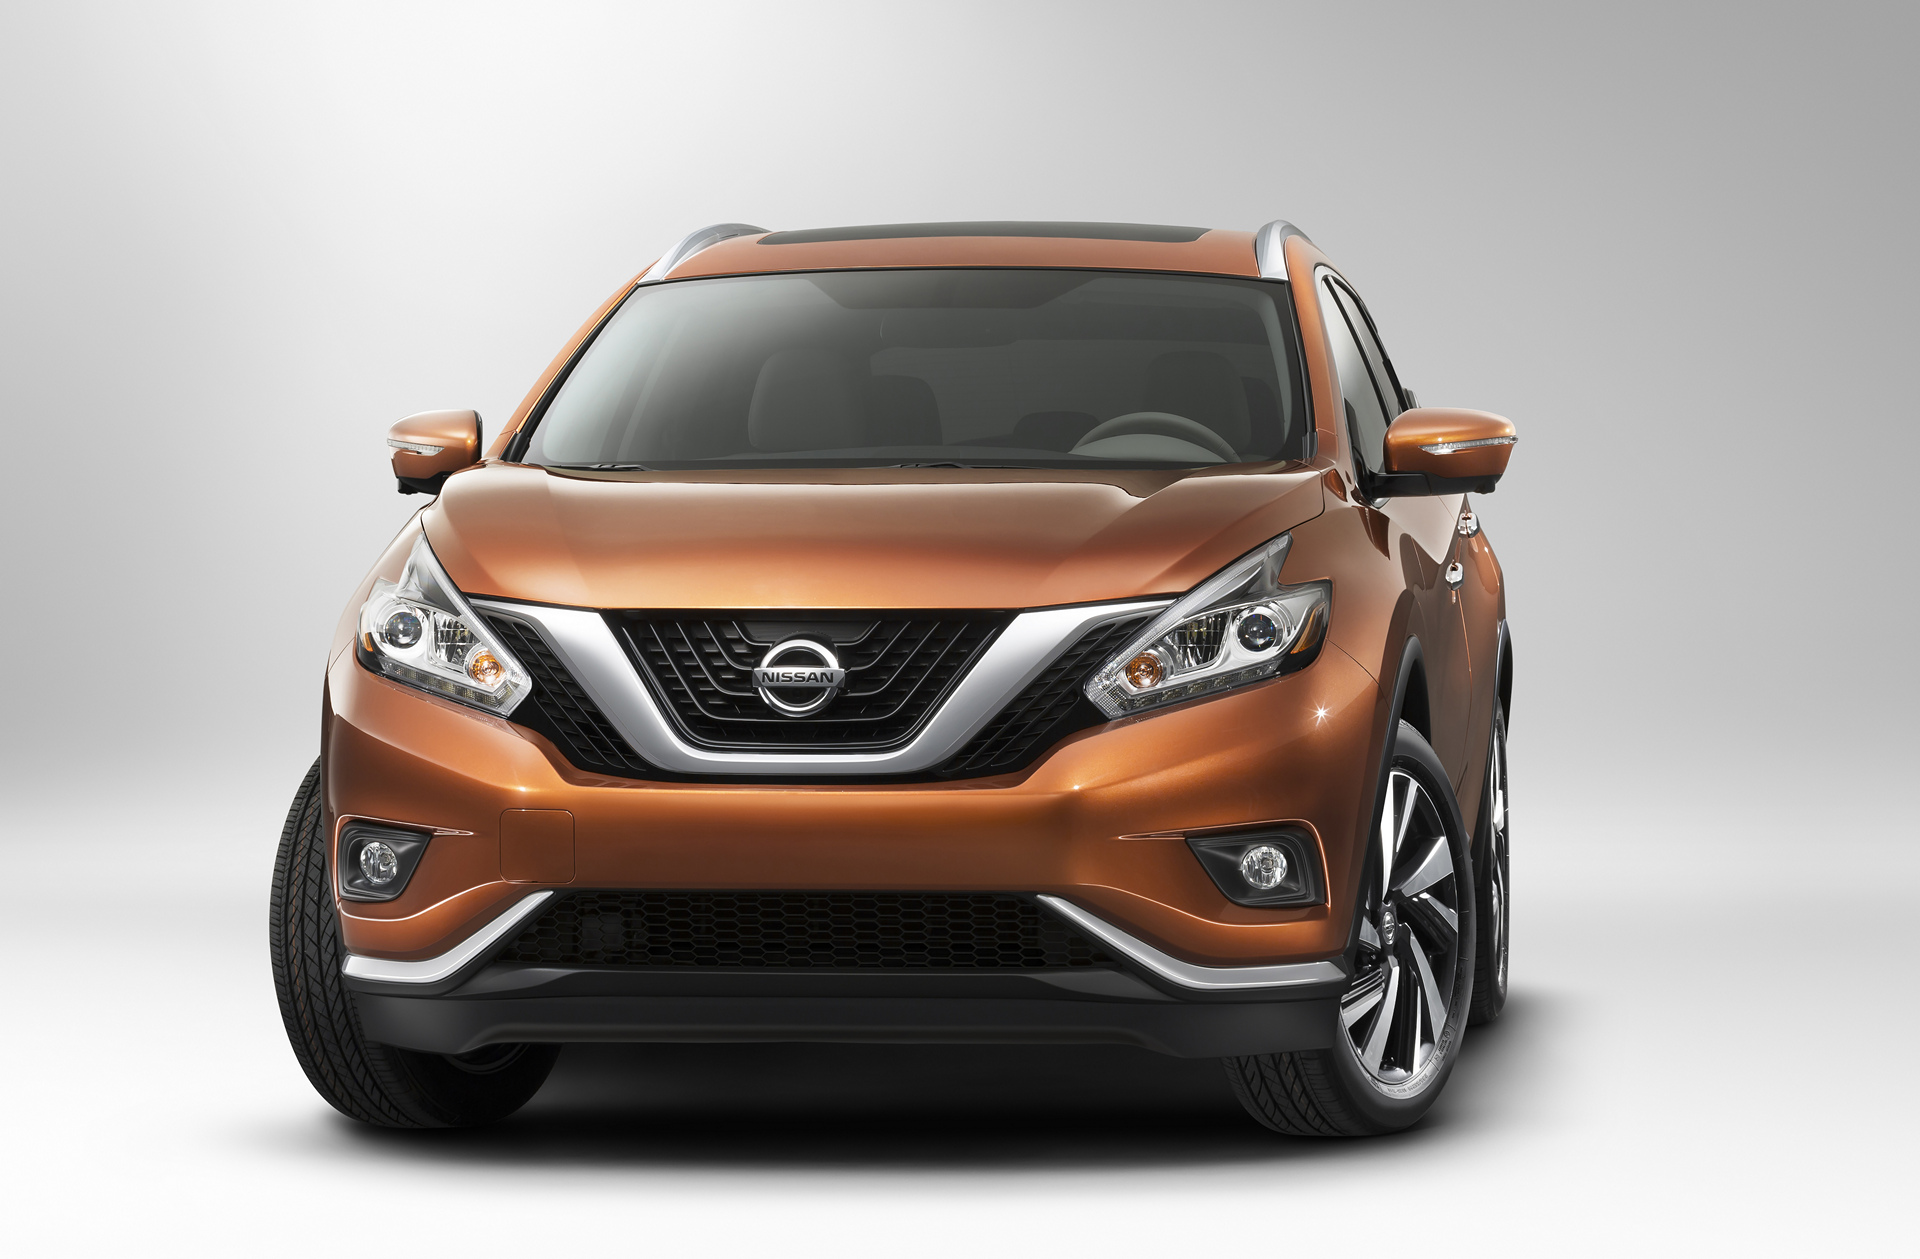 2016 Nissan Murano © Nissan Motor Co., Ltd.